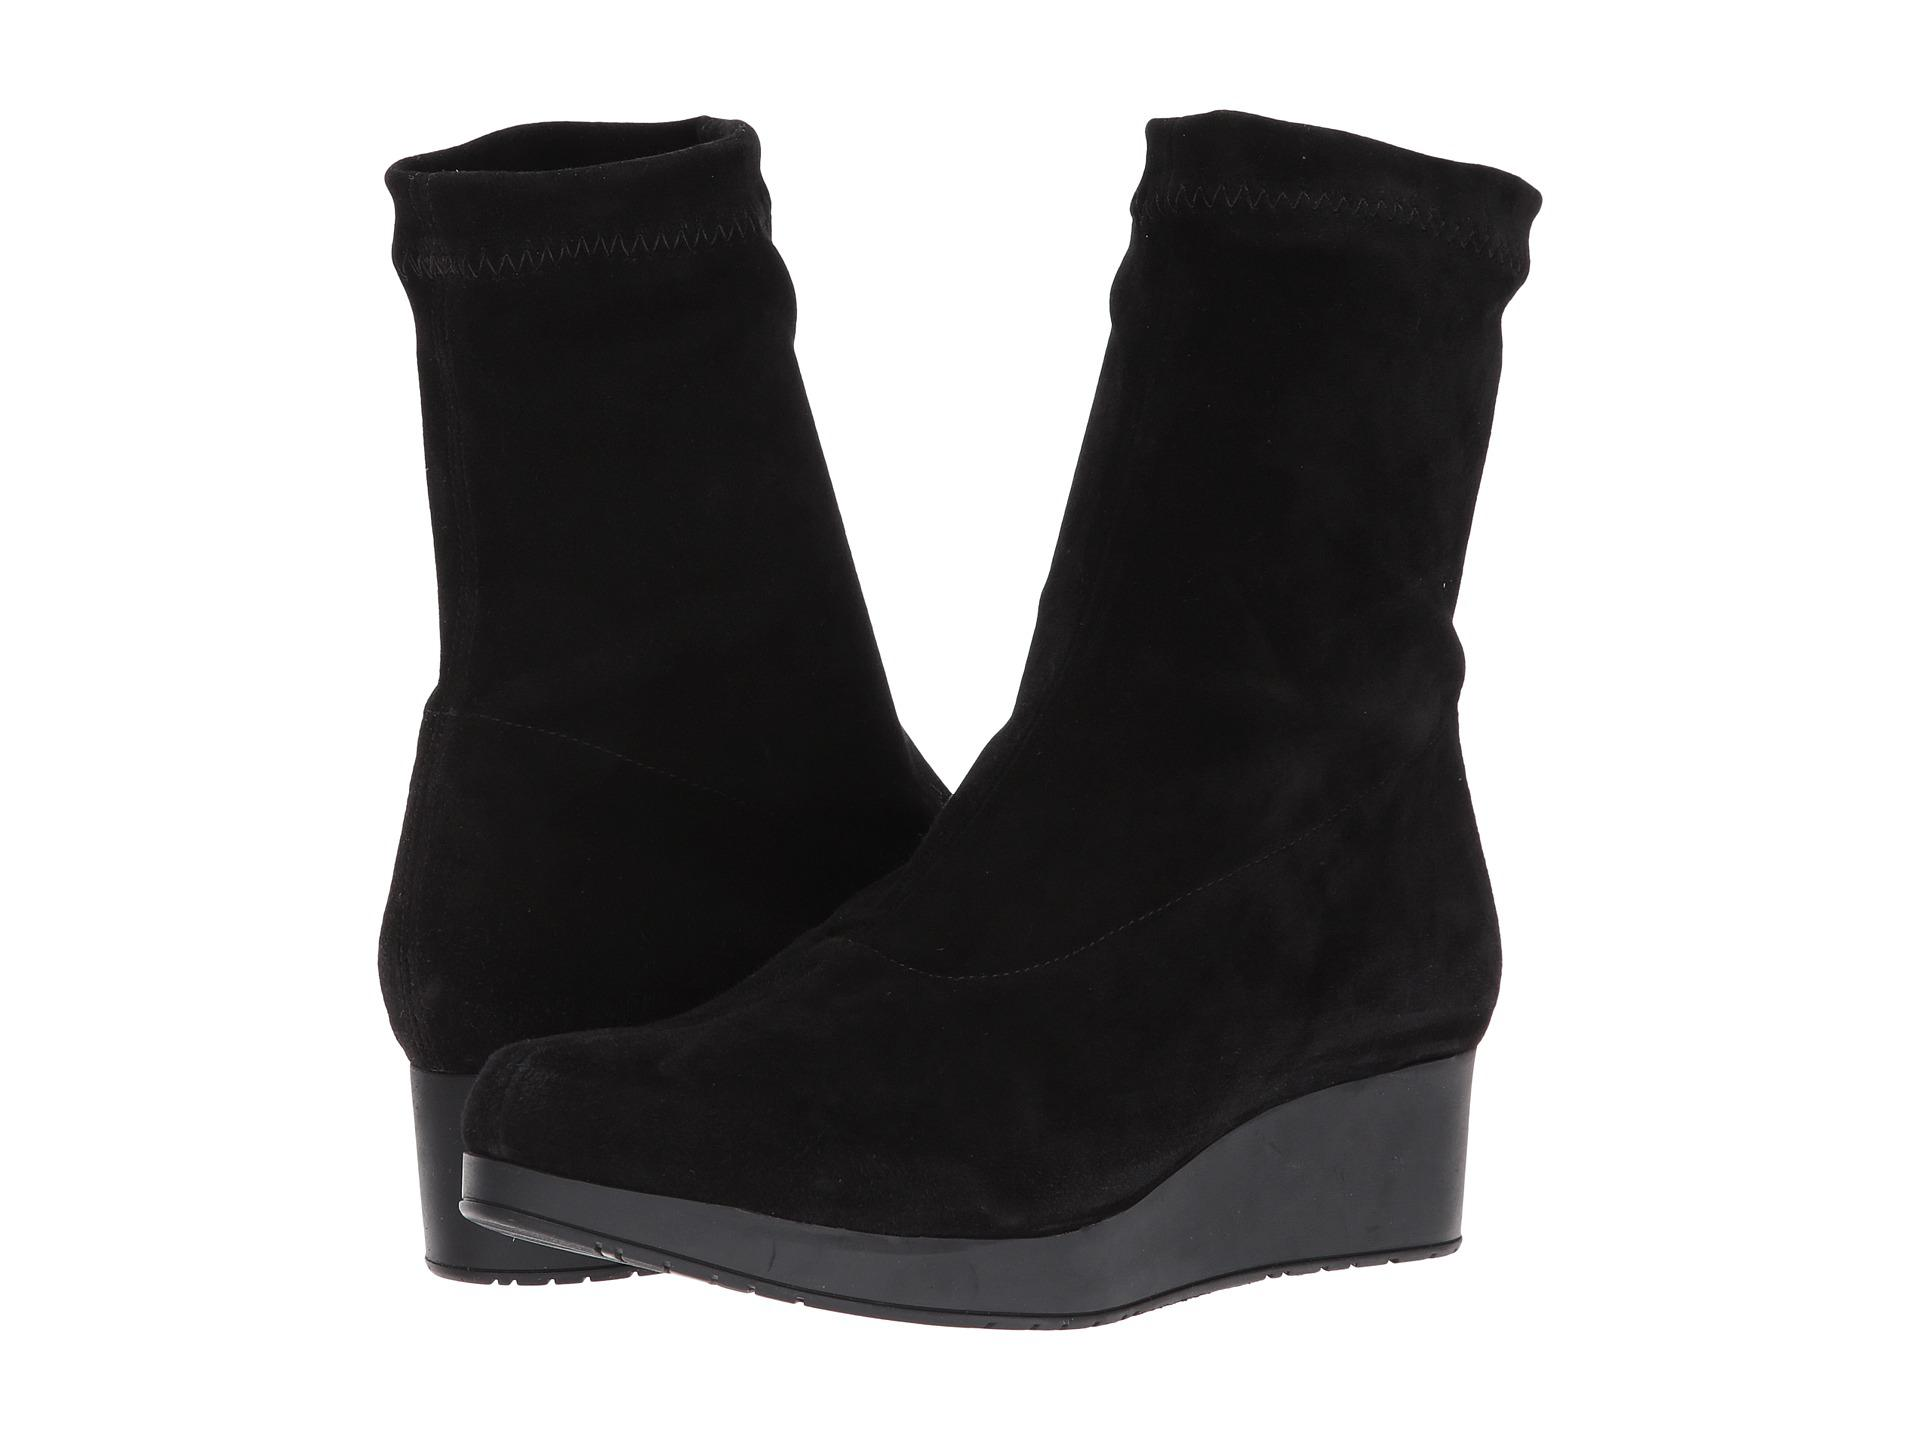 Nerdaln, Womens Ankle Boots Robert Clergerie